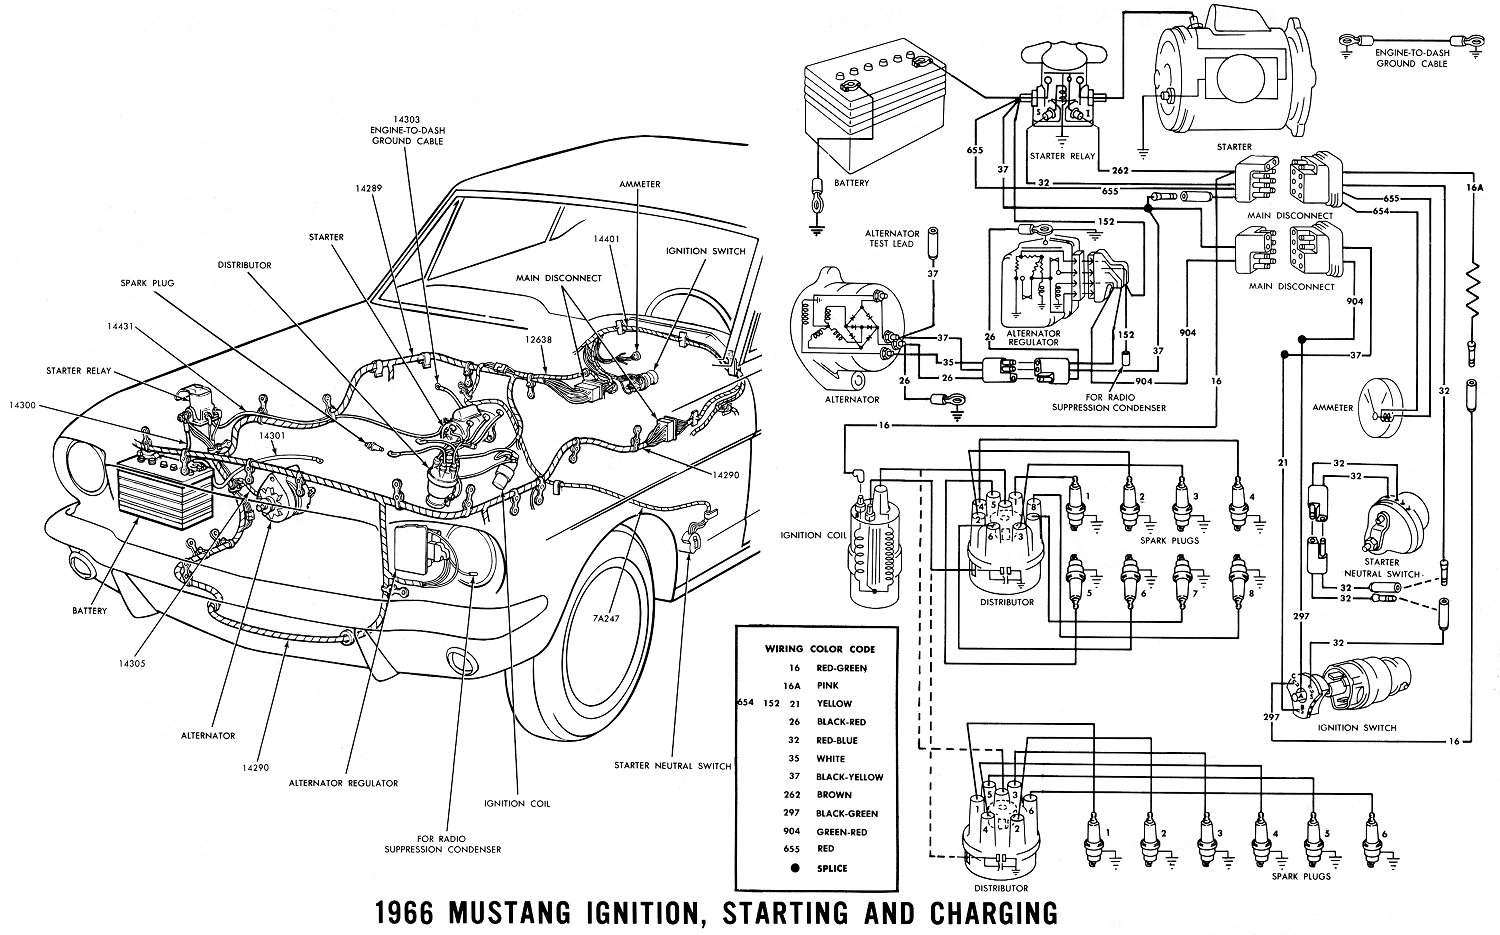 66ignit 1966 mustang wiring diagrams average joe restoration Ford E 350 Wiring Diagrams at edmiracle.co